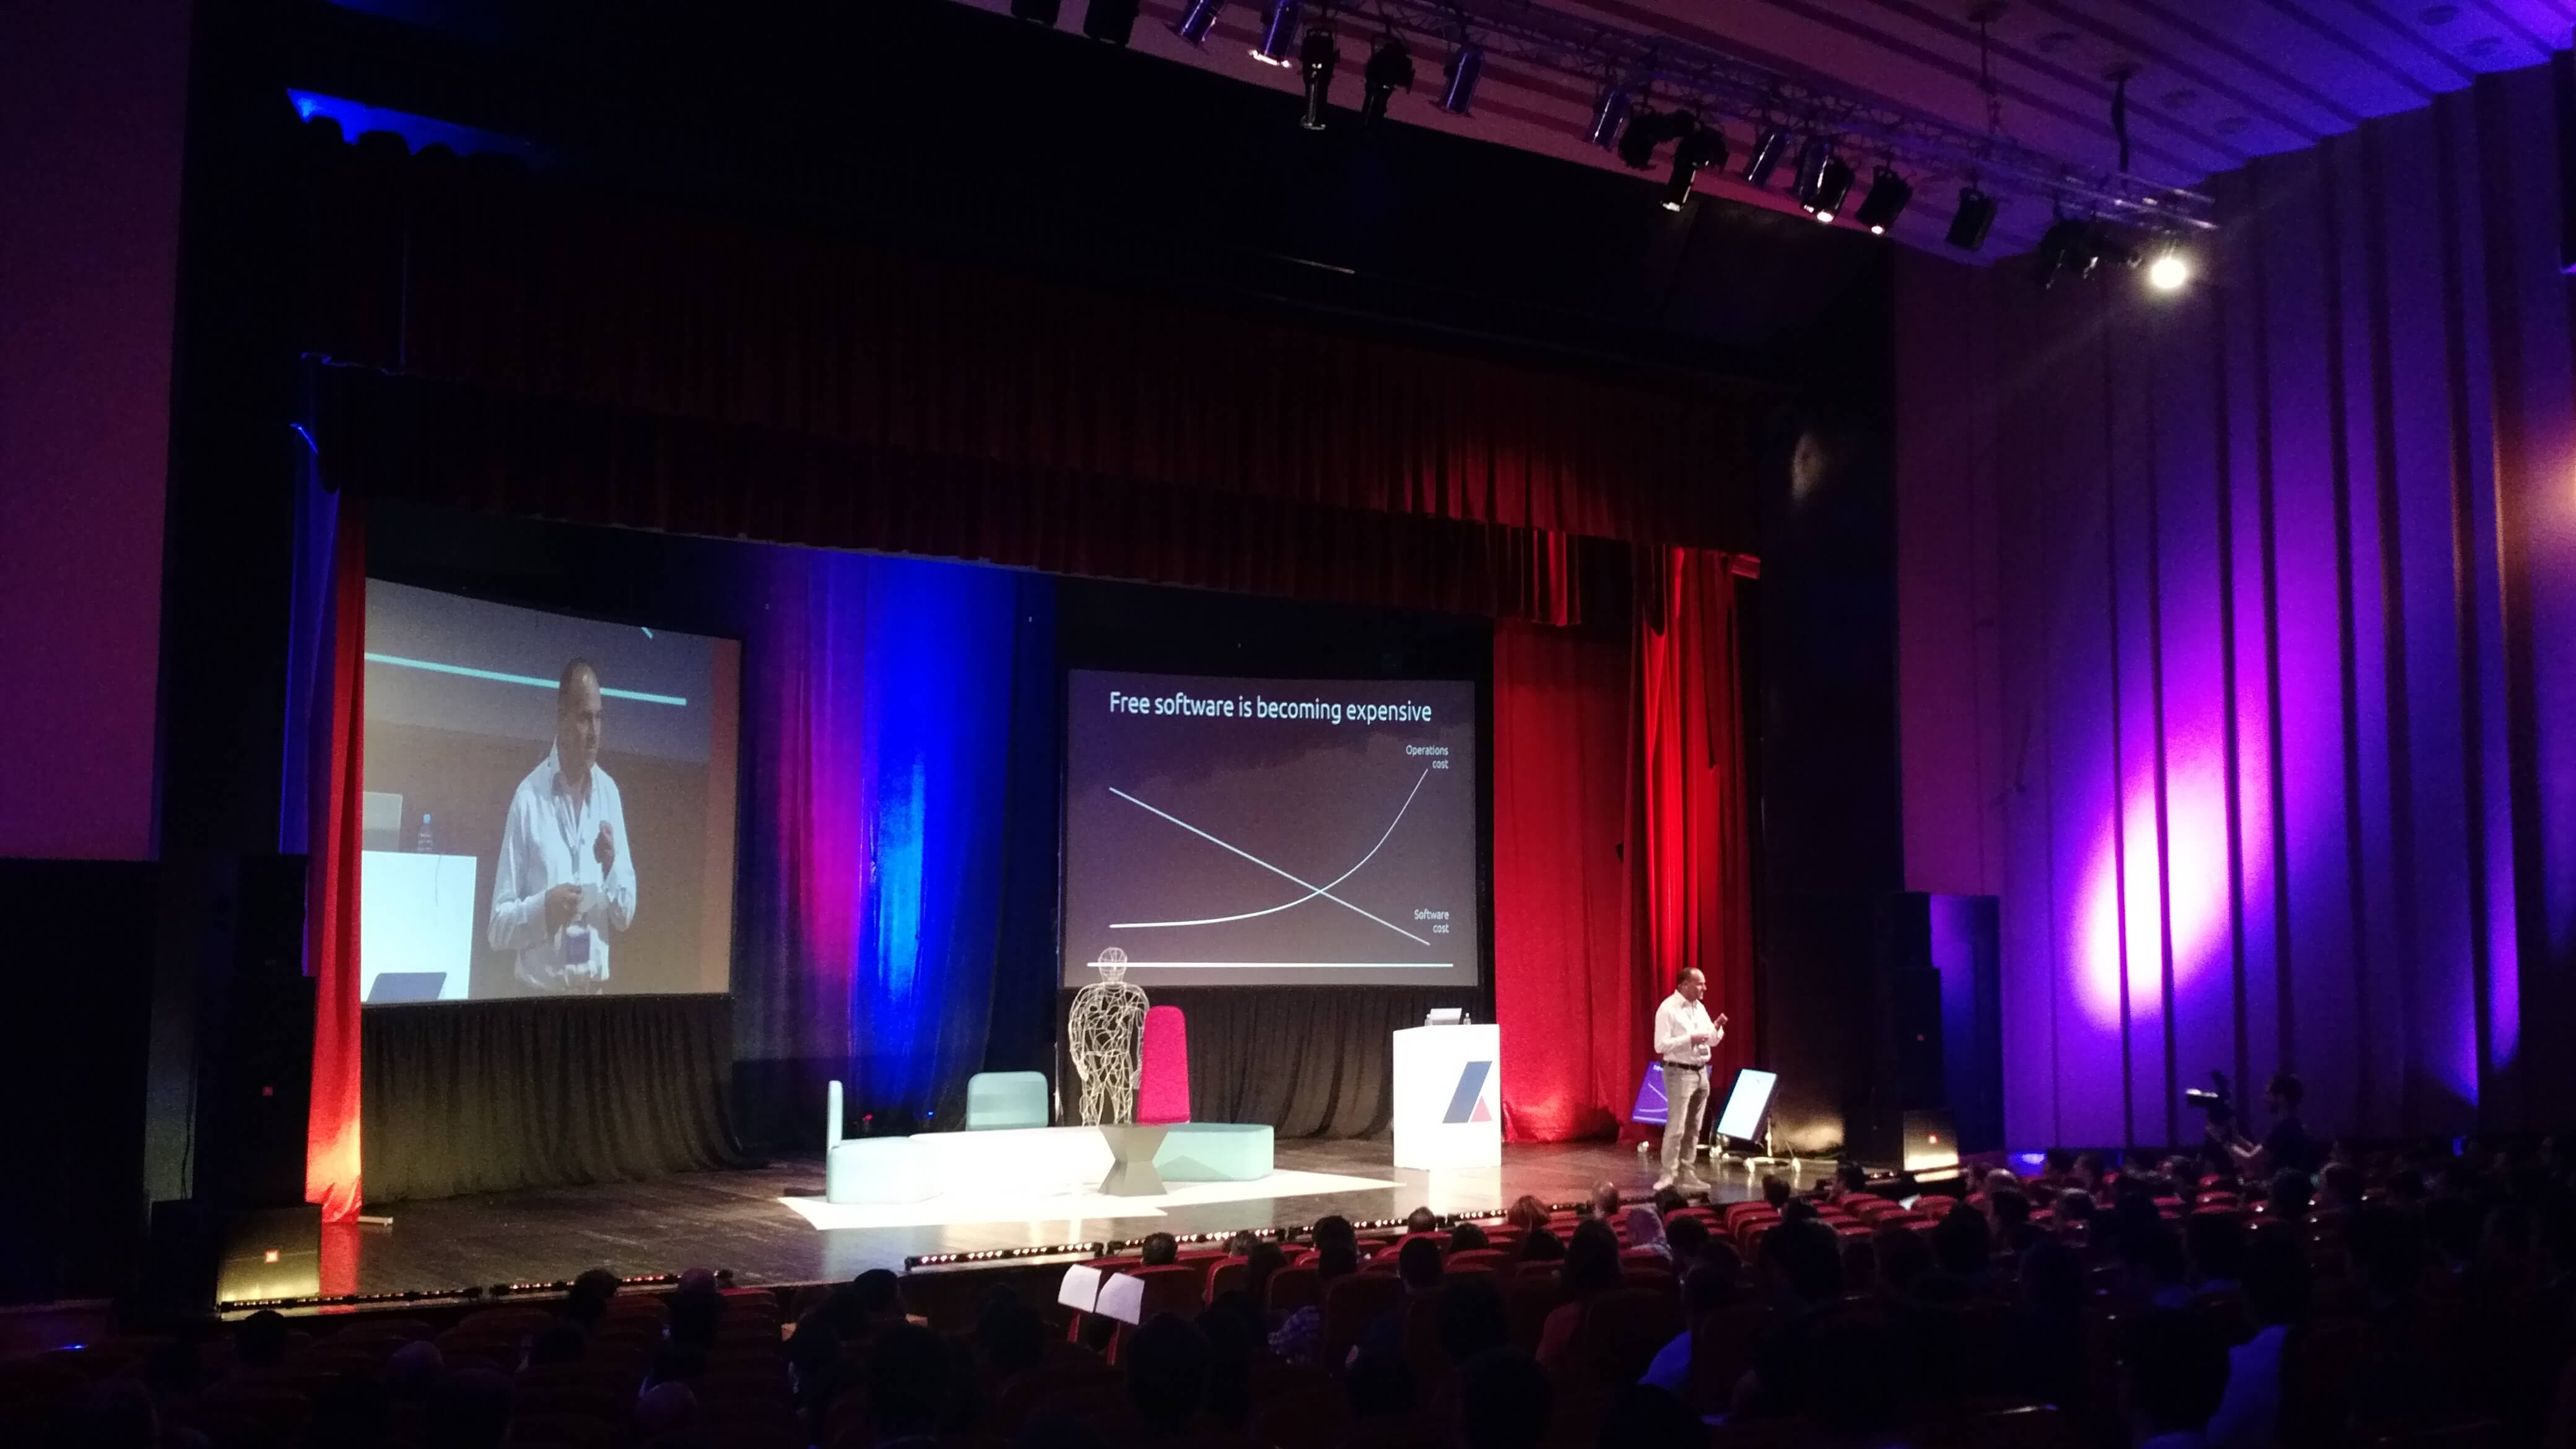 Free software is becoming expensive - conferences